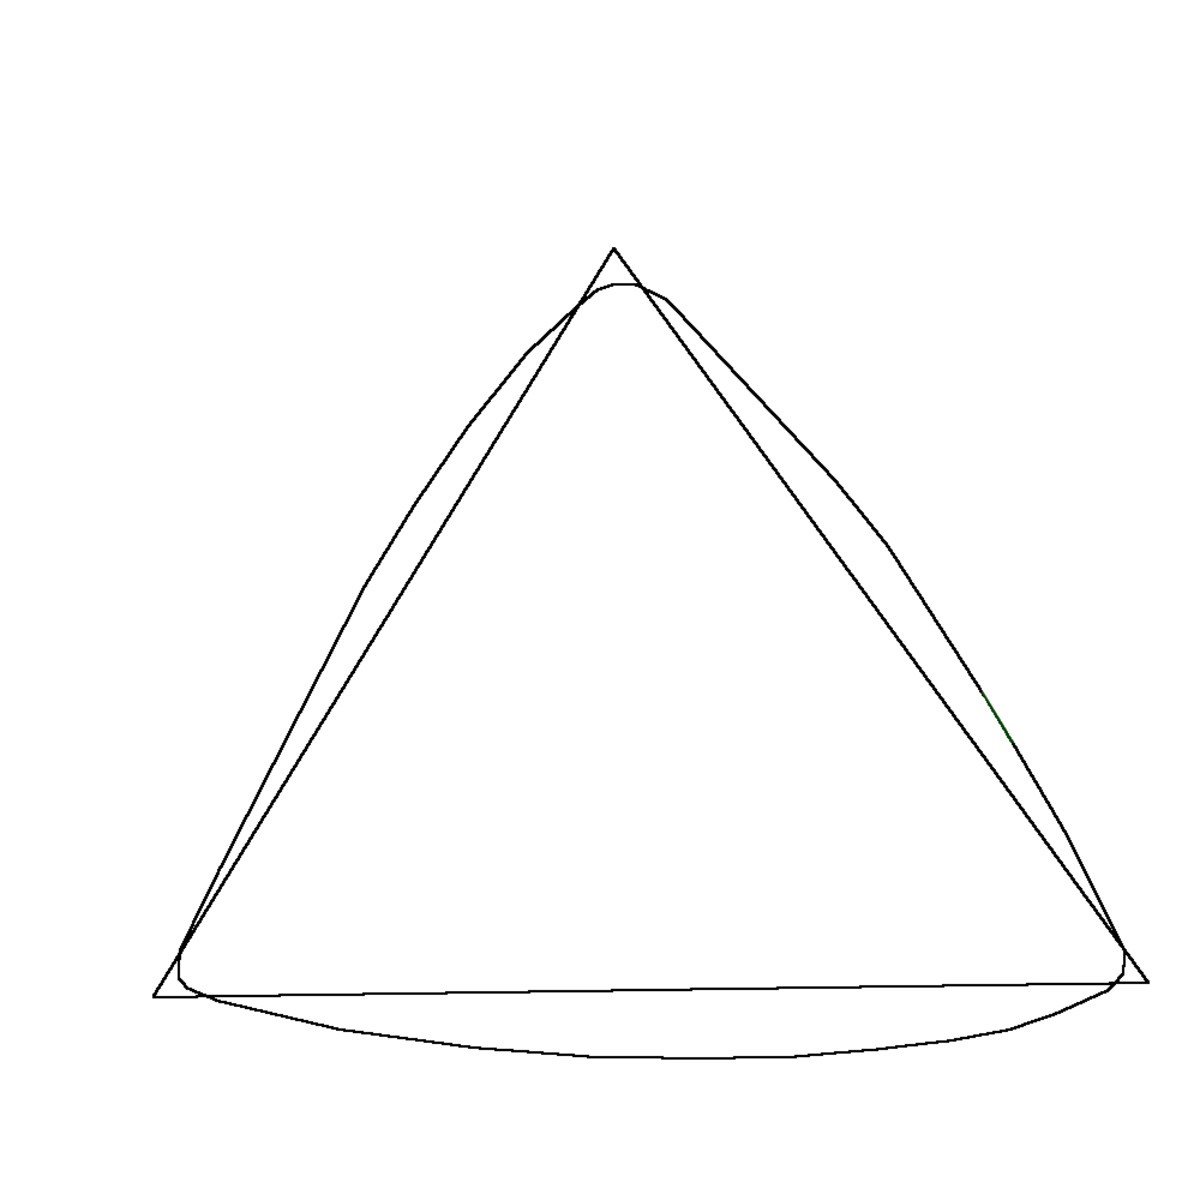 Outline drawn over your triangle shape to make the body shape more like the Yellow Angry Birds body.